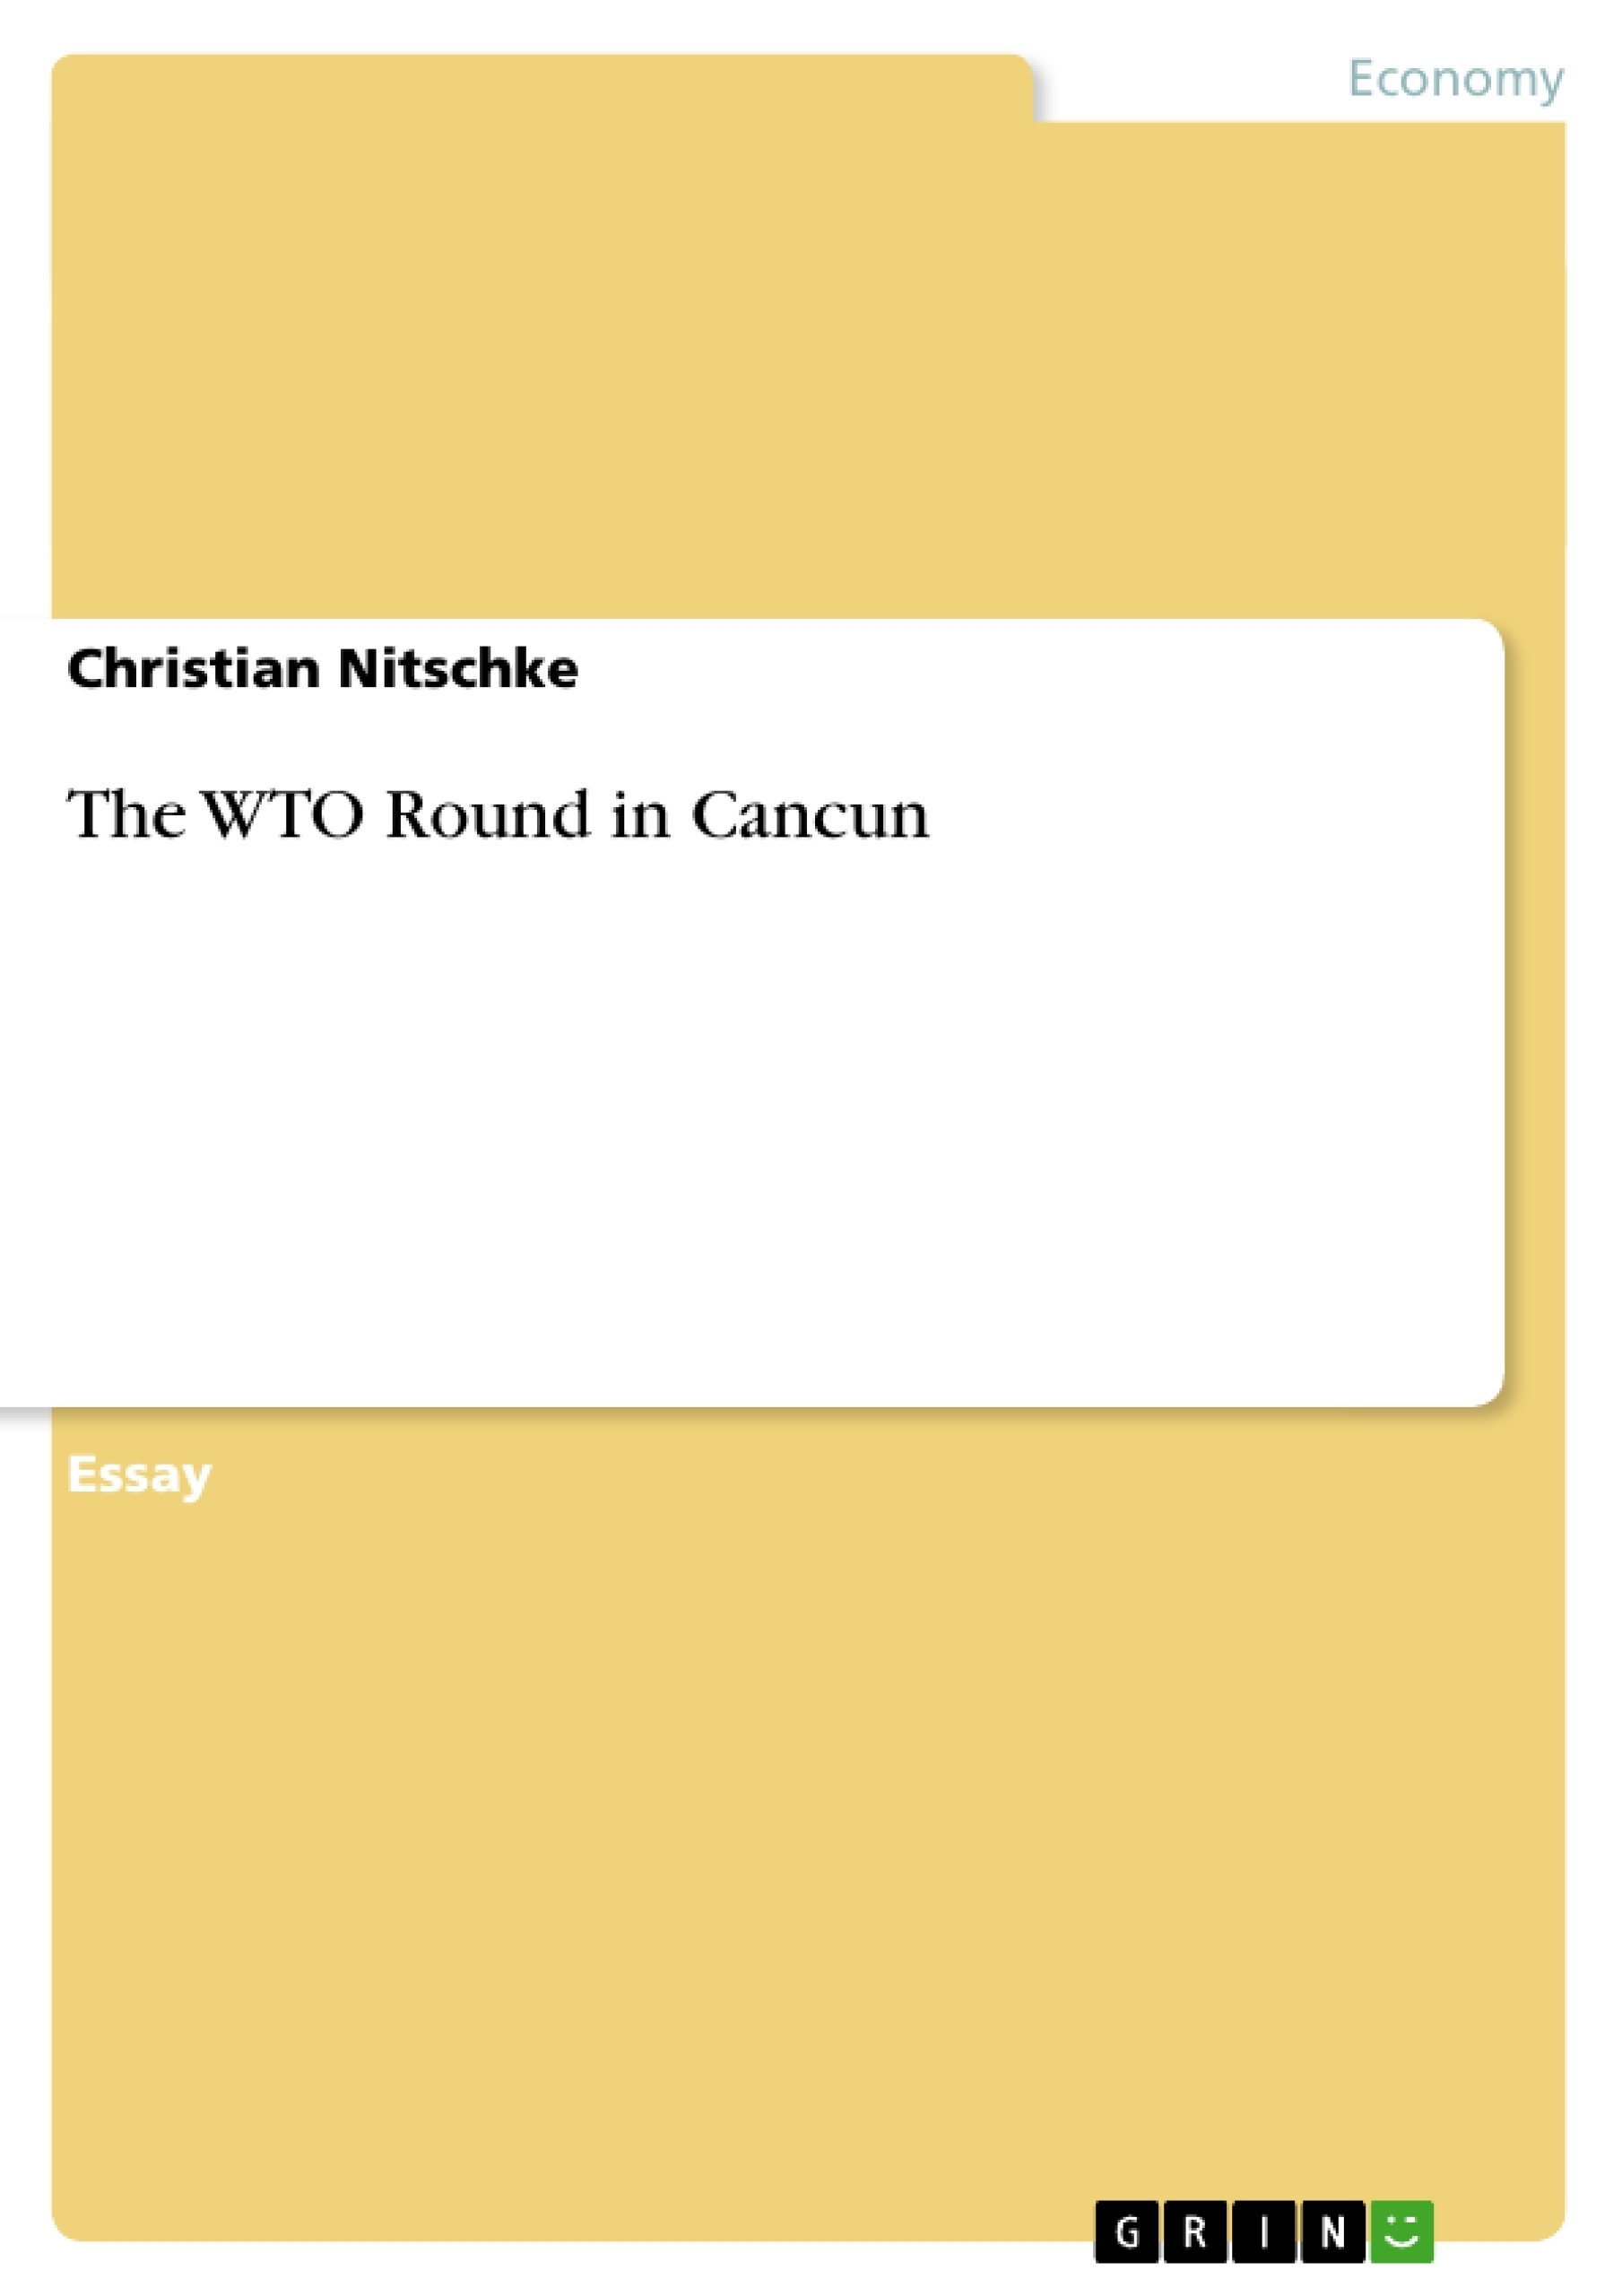 Title: The WTO Round in Cancun